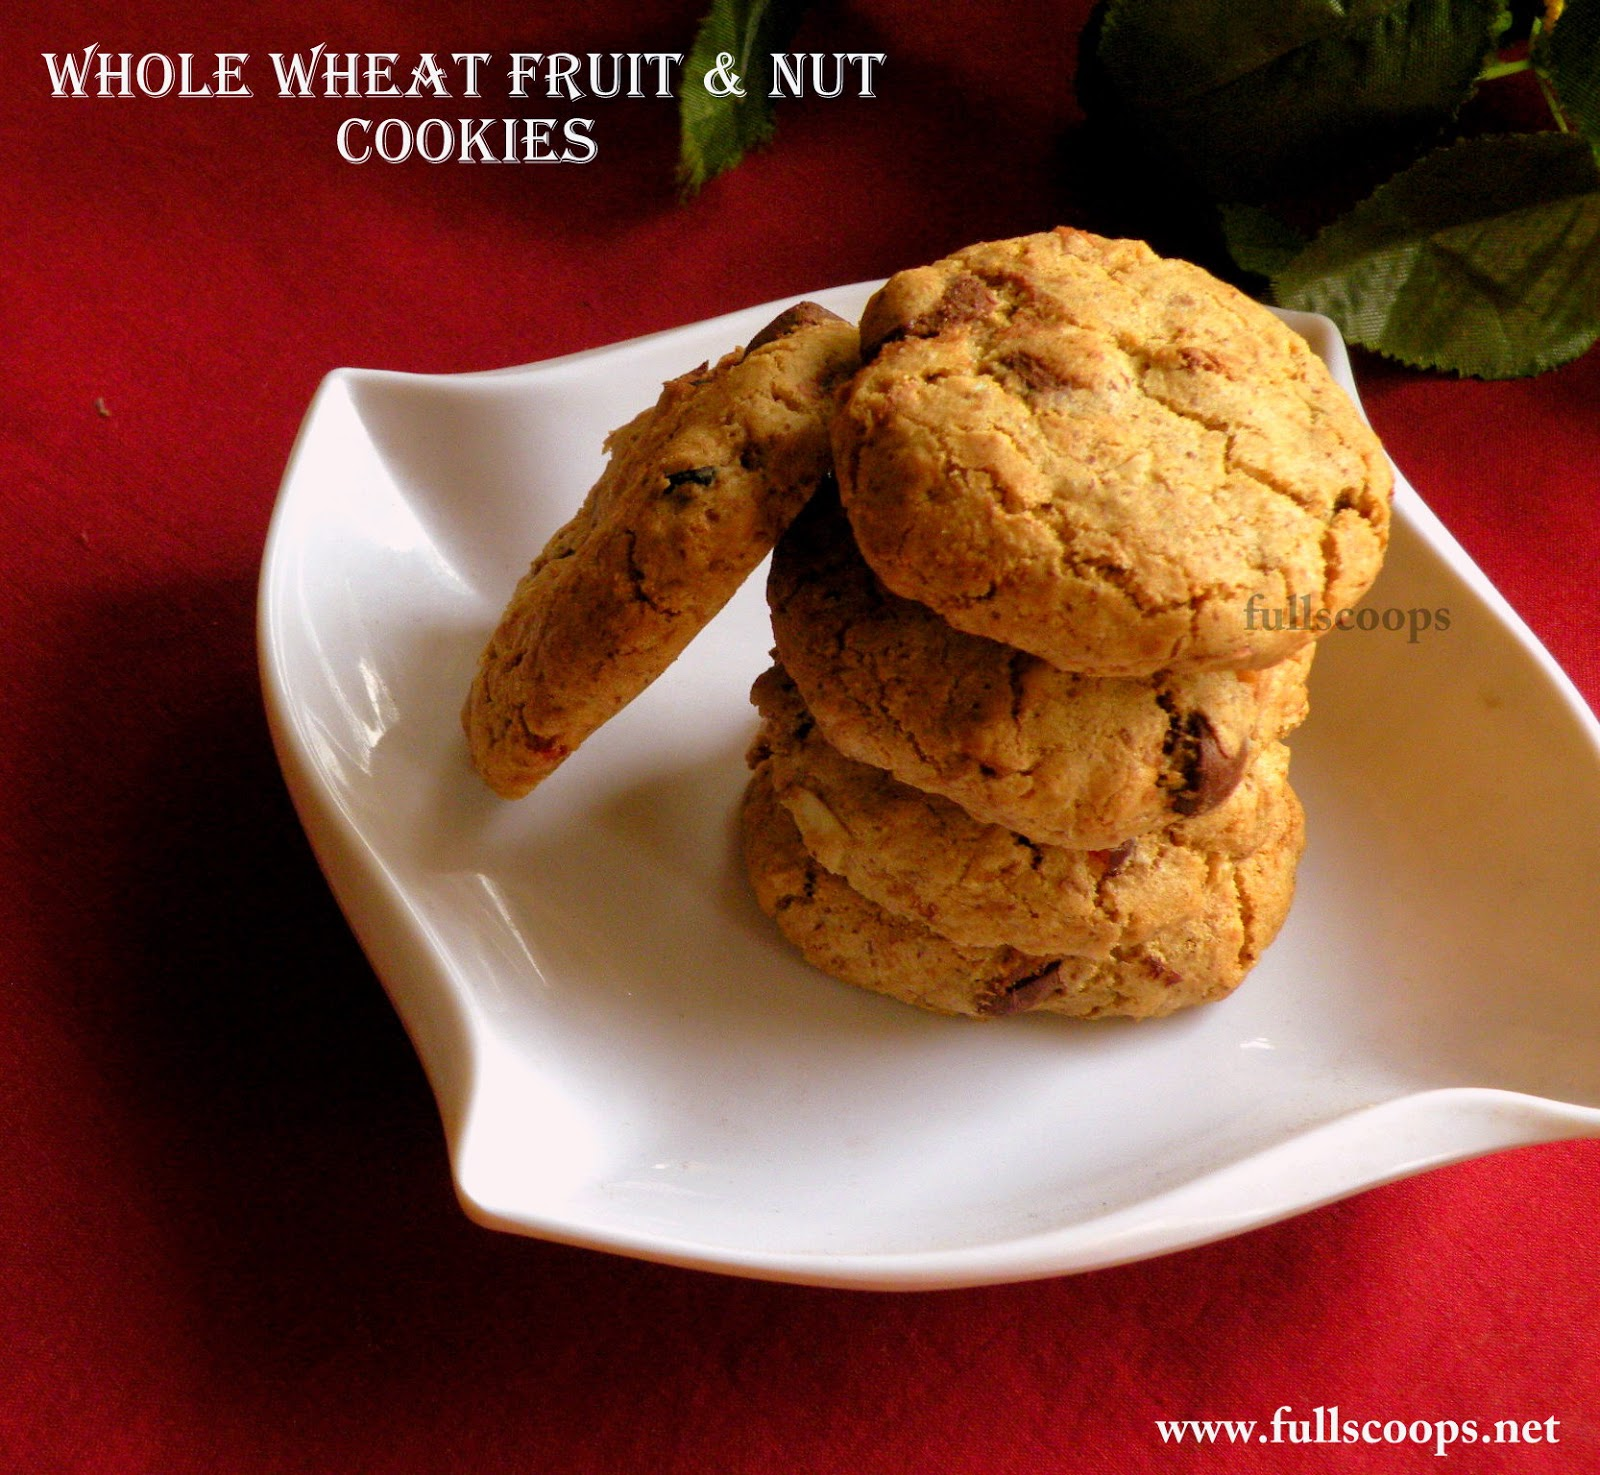 Whole Wheat Fruit and Nut Cookies ~ Full Scoops